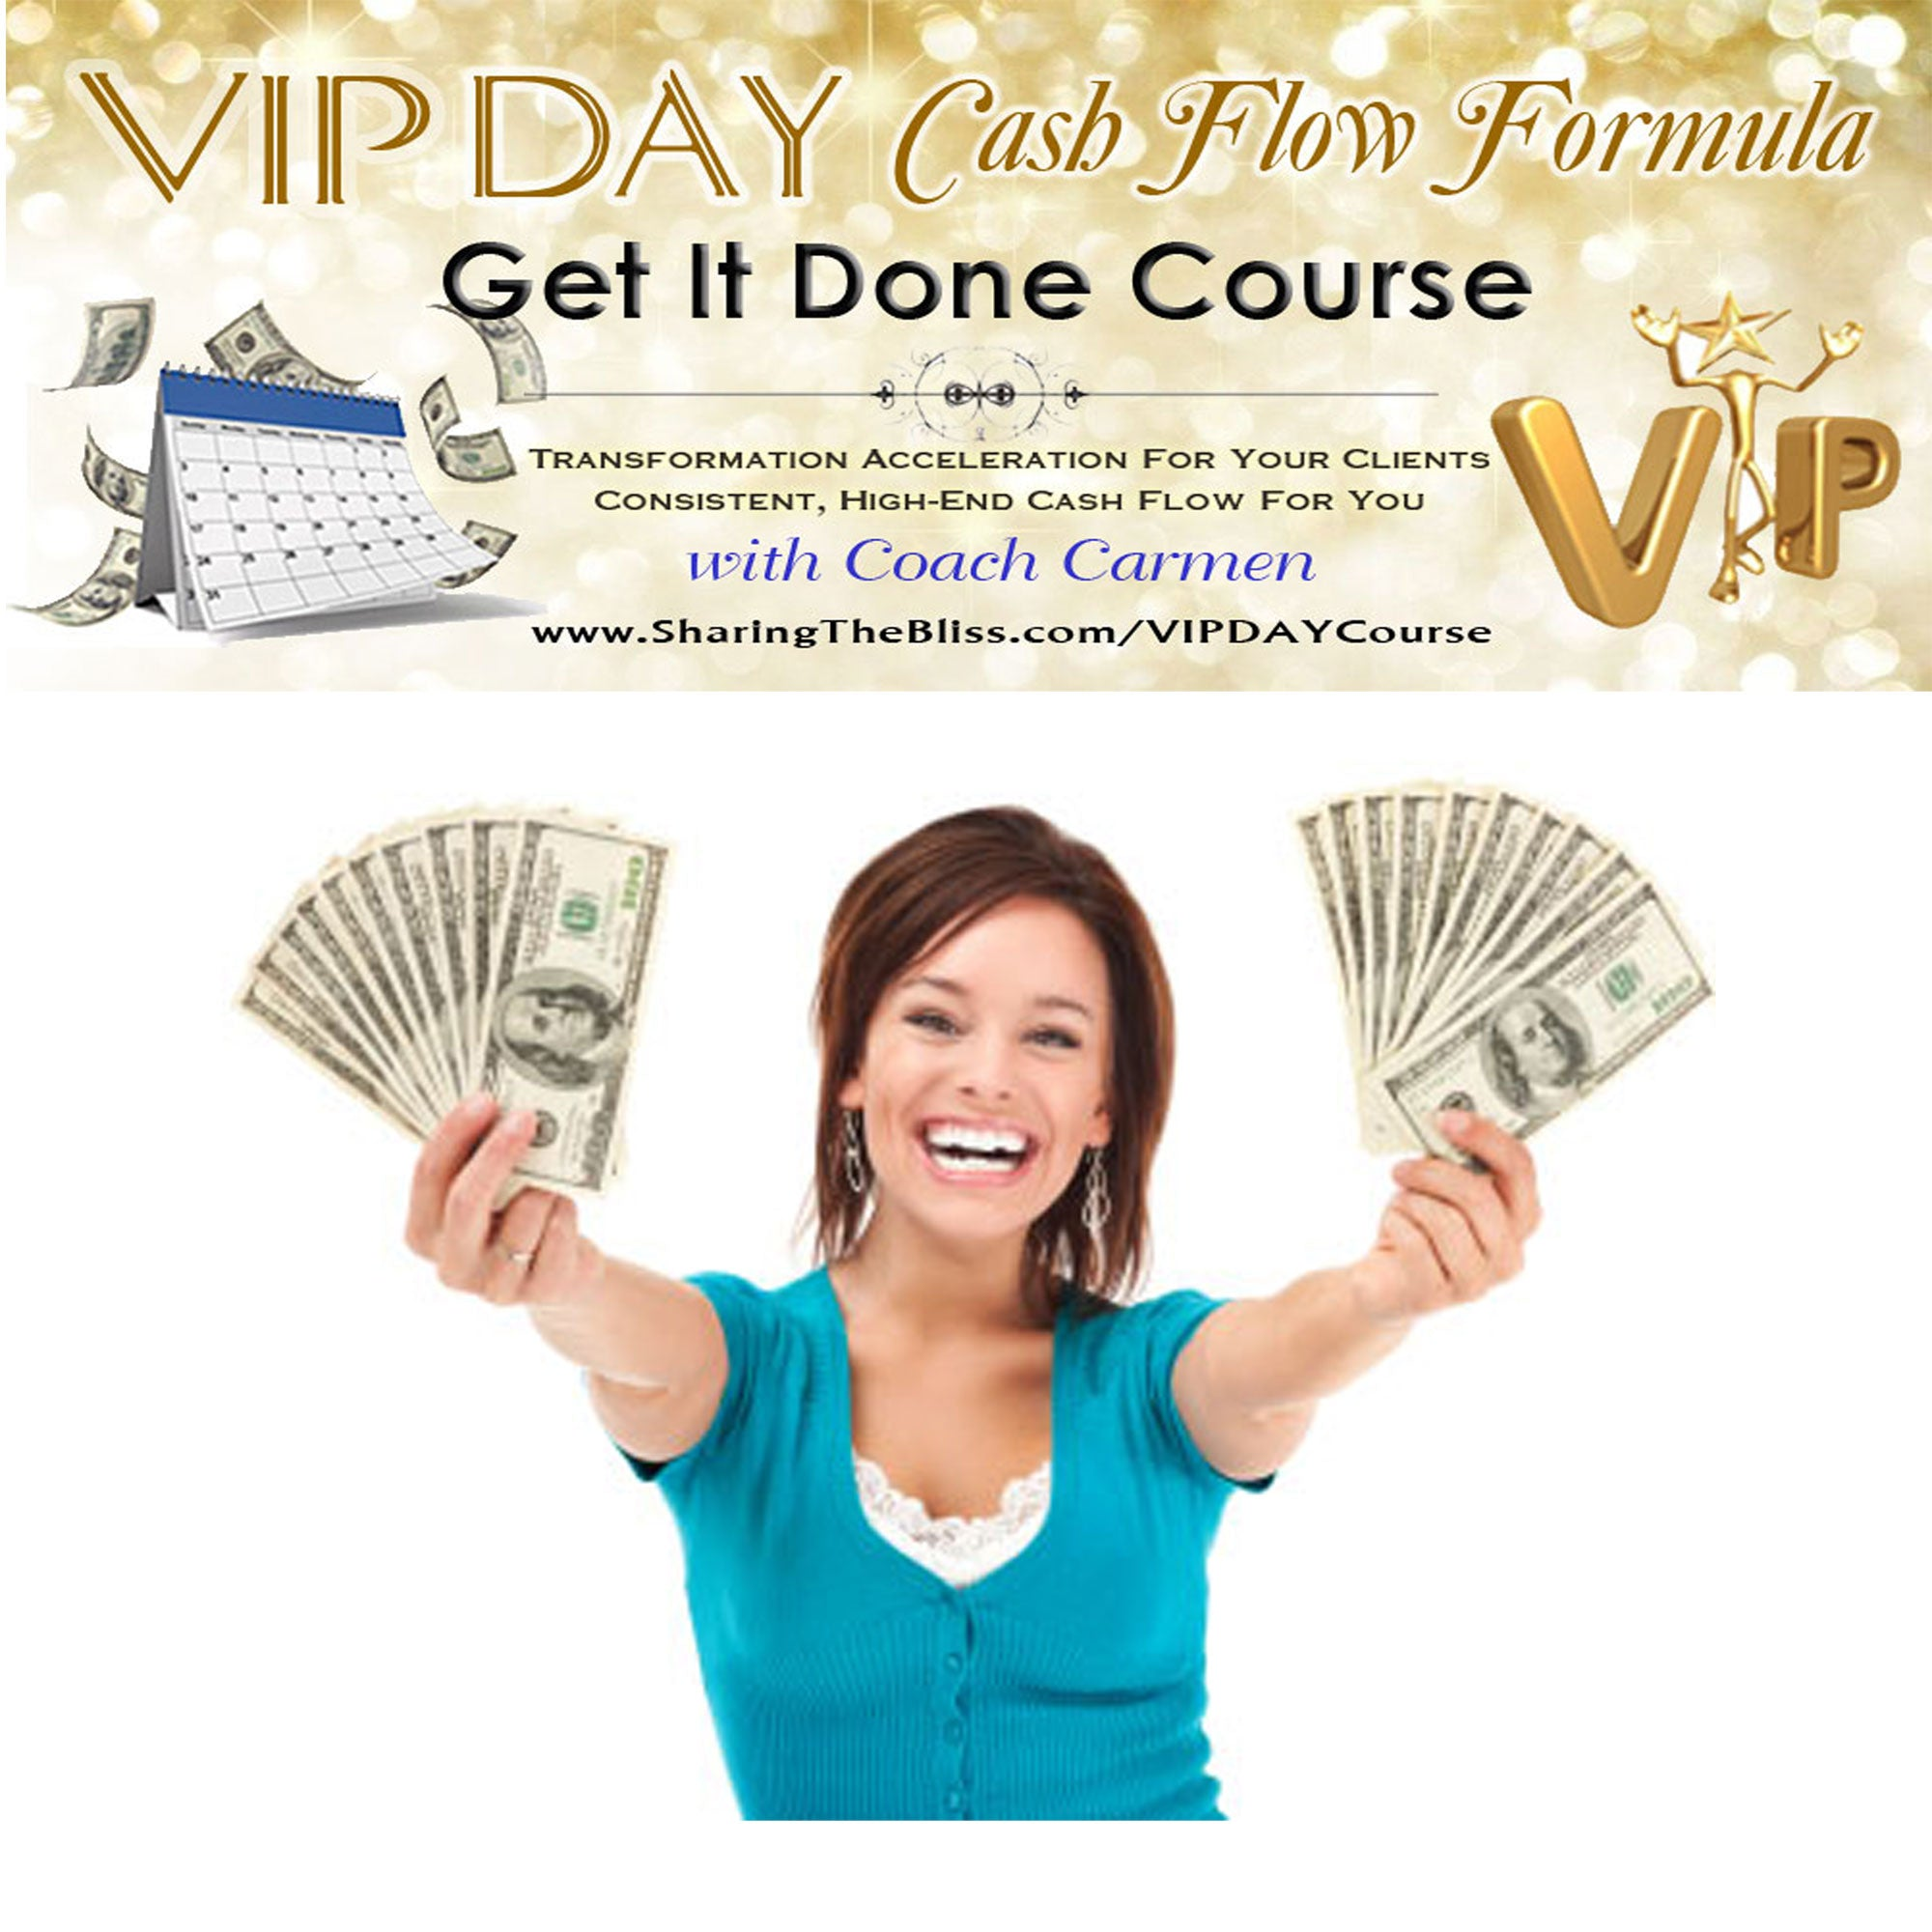 VIP DAY Cash Flow Formula Course (4 Full-Day Virtual Intensives)